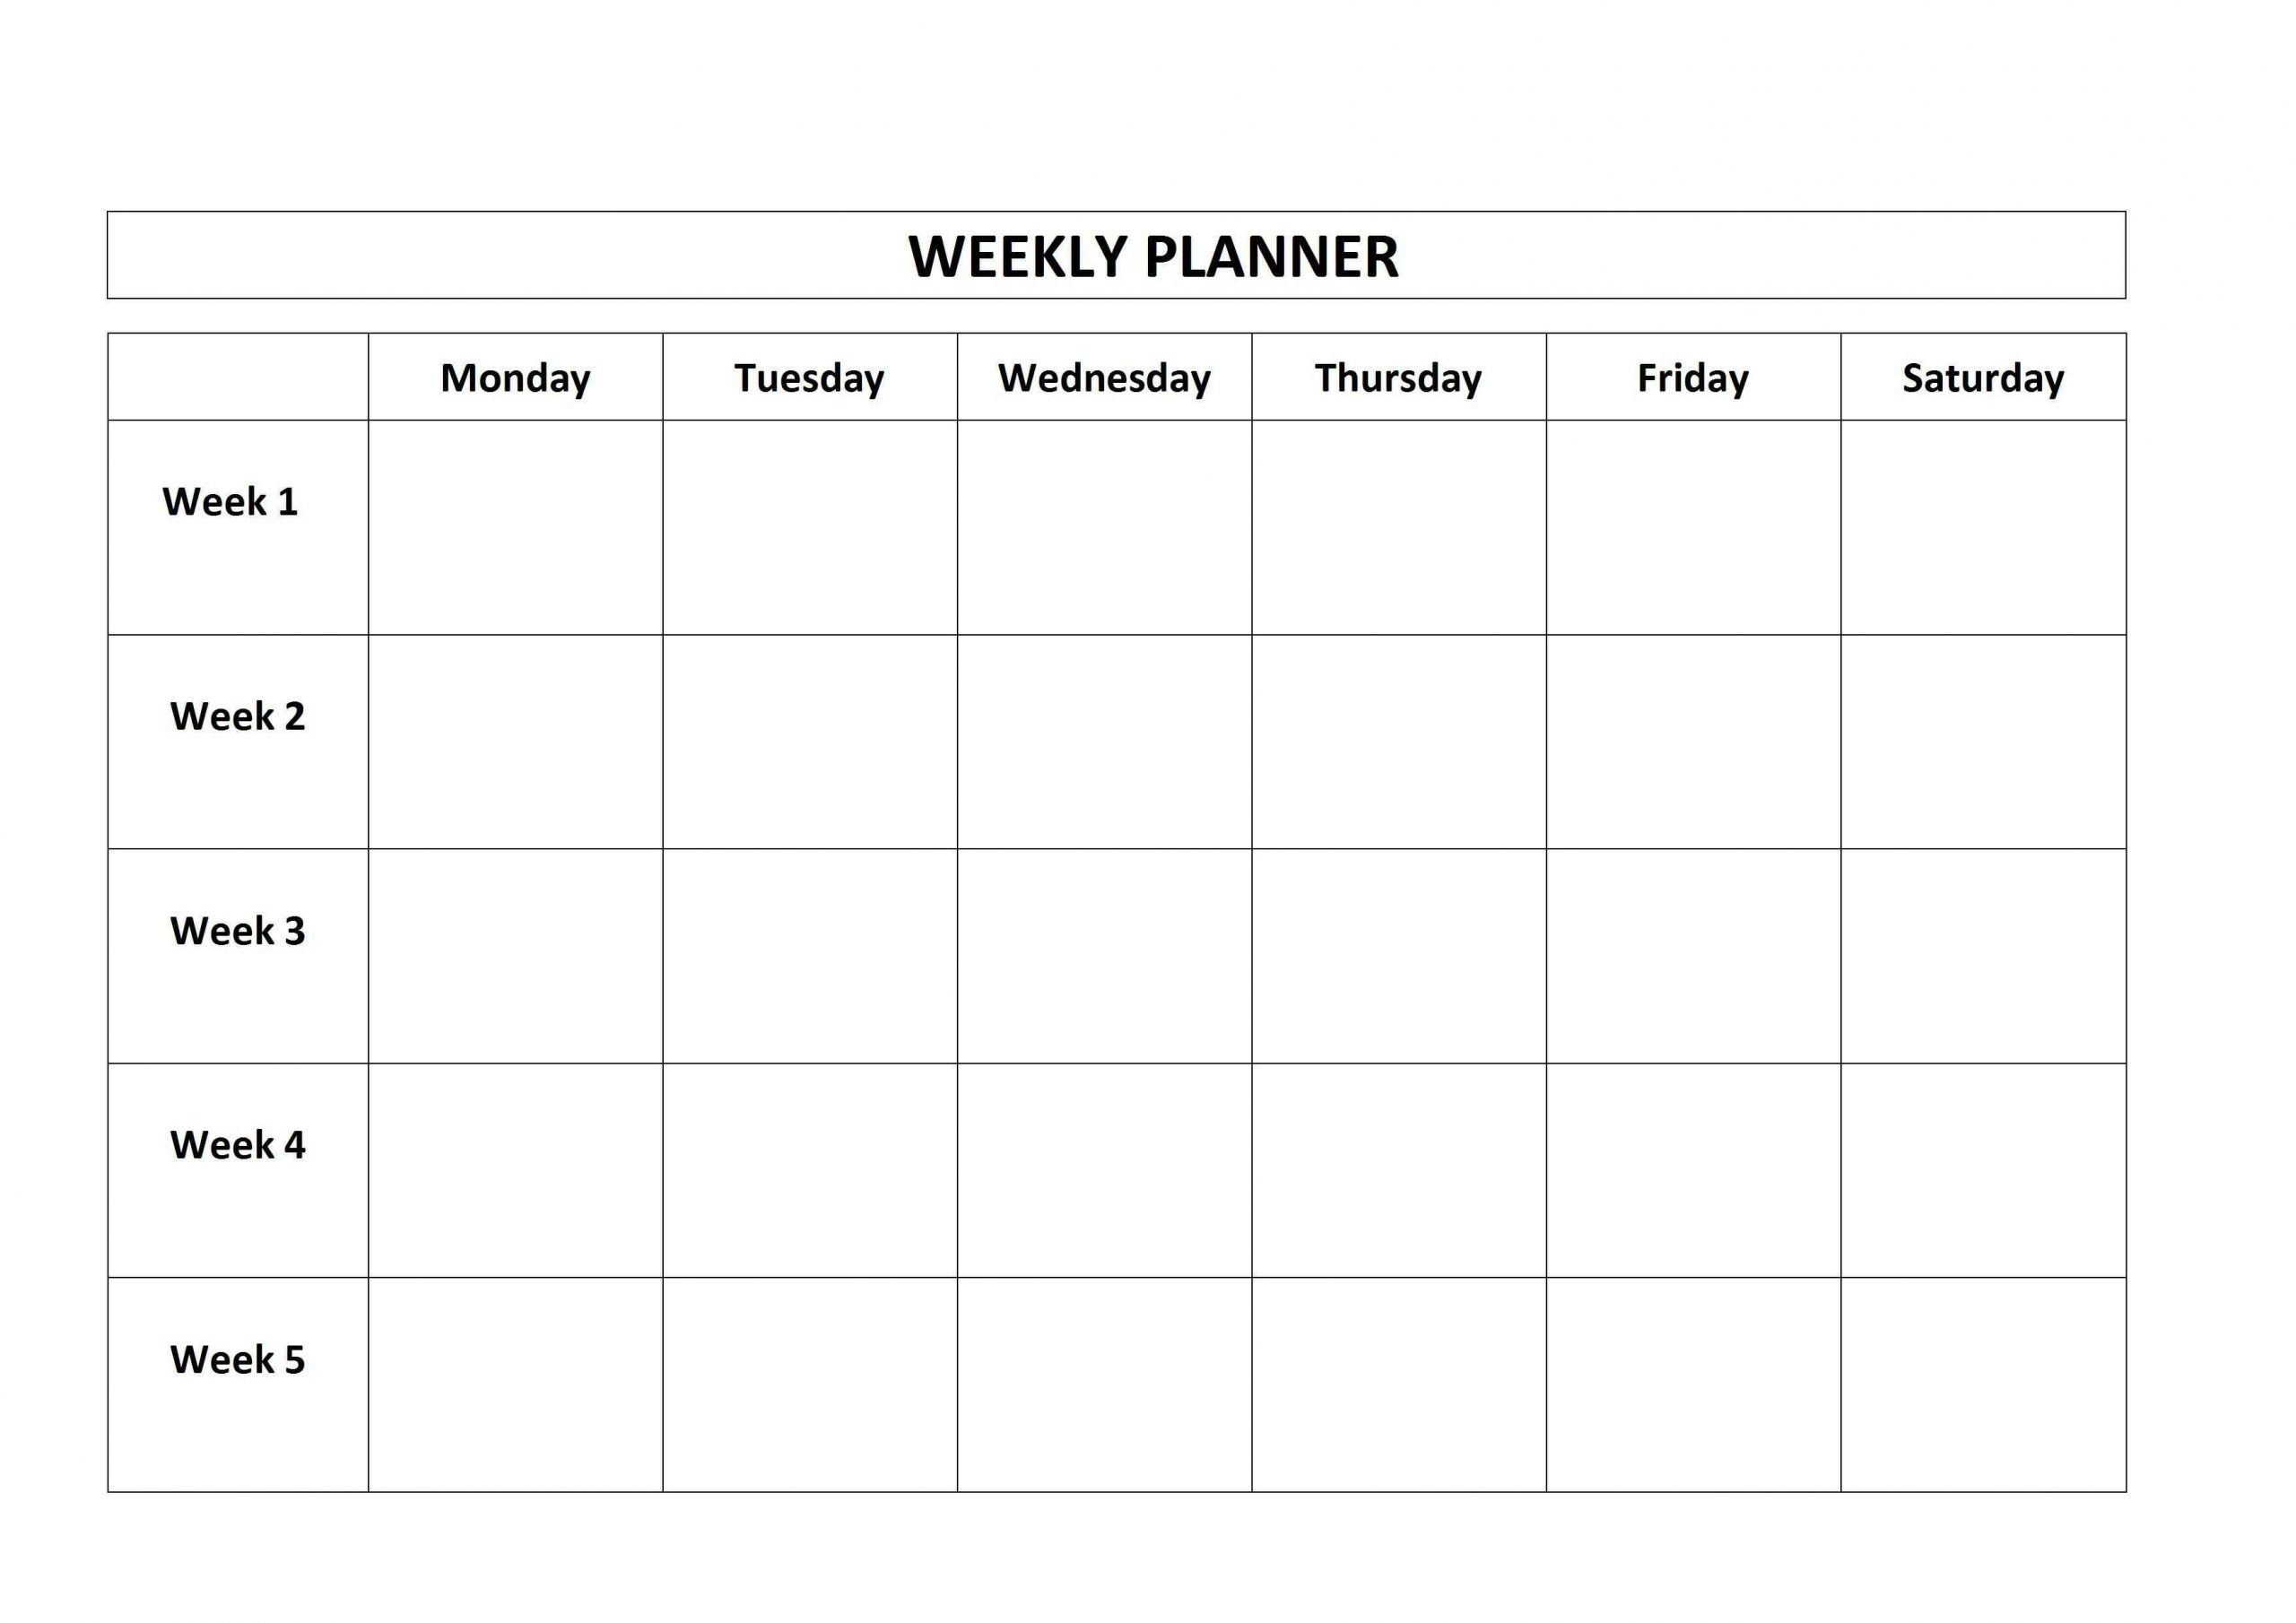 Monday To Friday Planner Template | Calendar For Planning